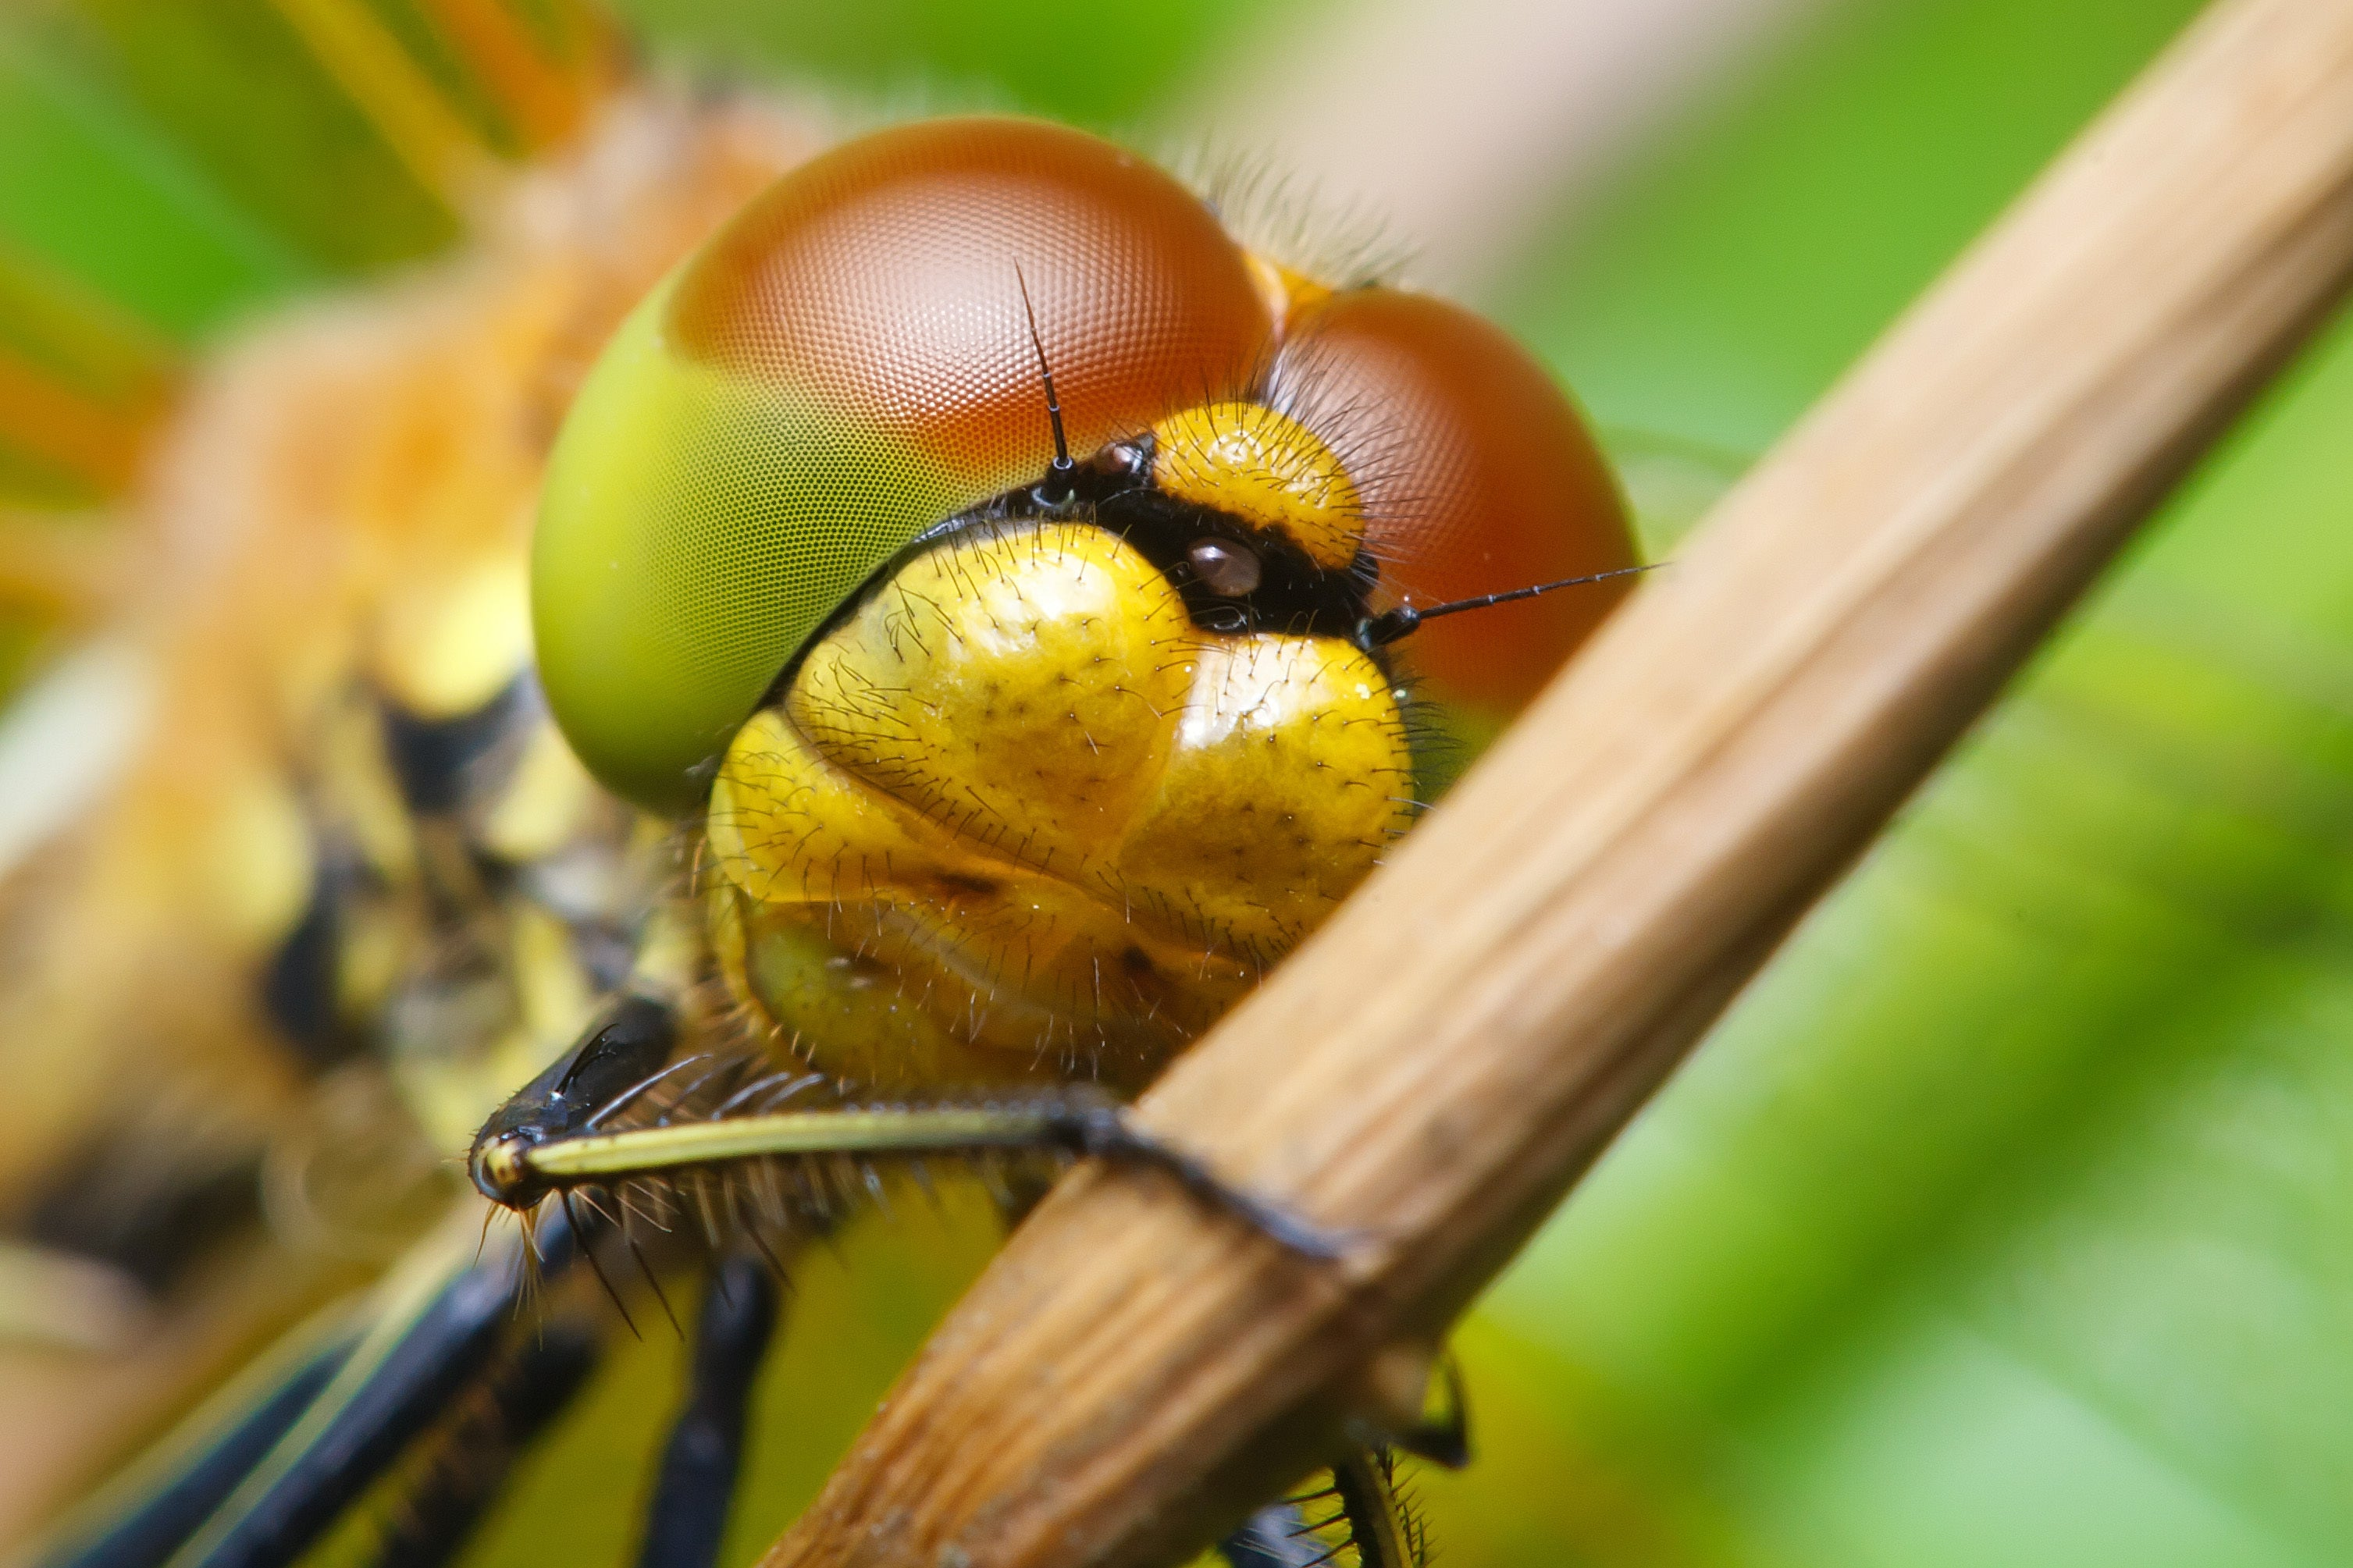 Dragon fly compound eye